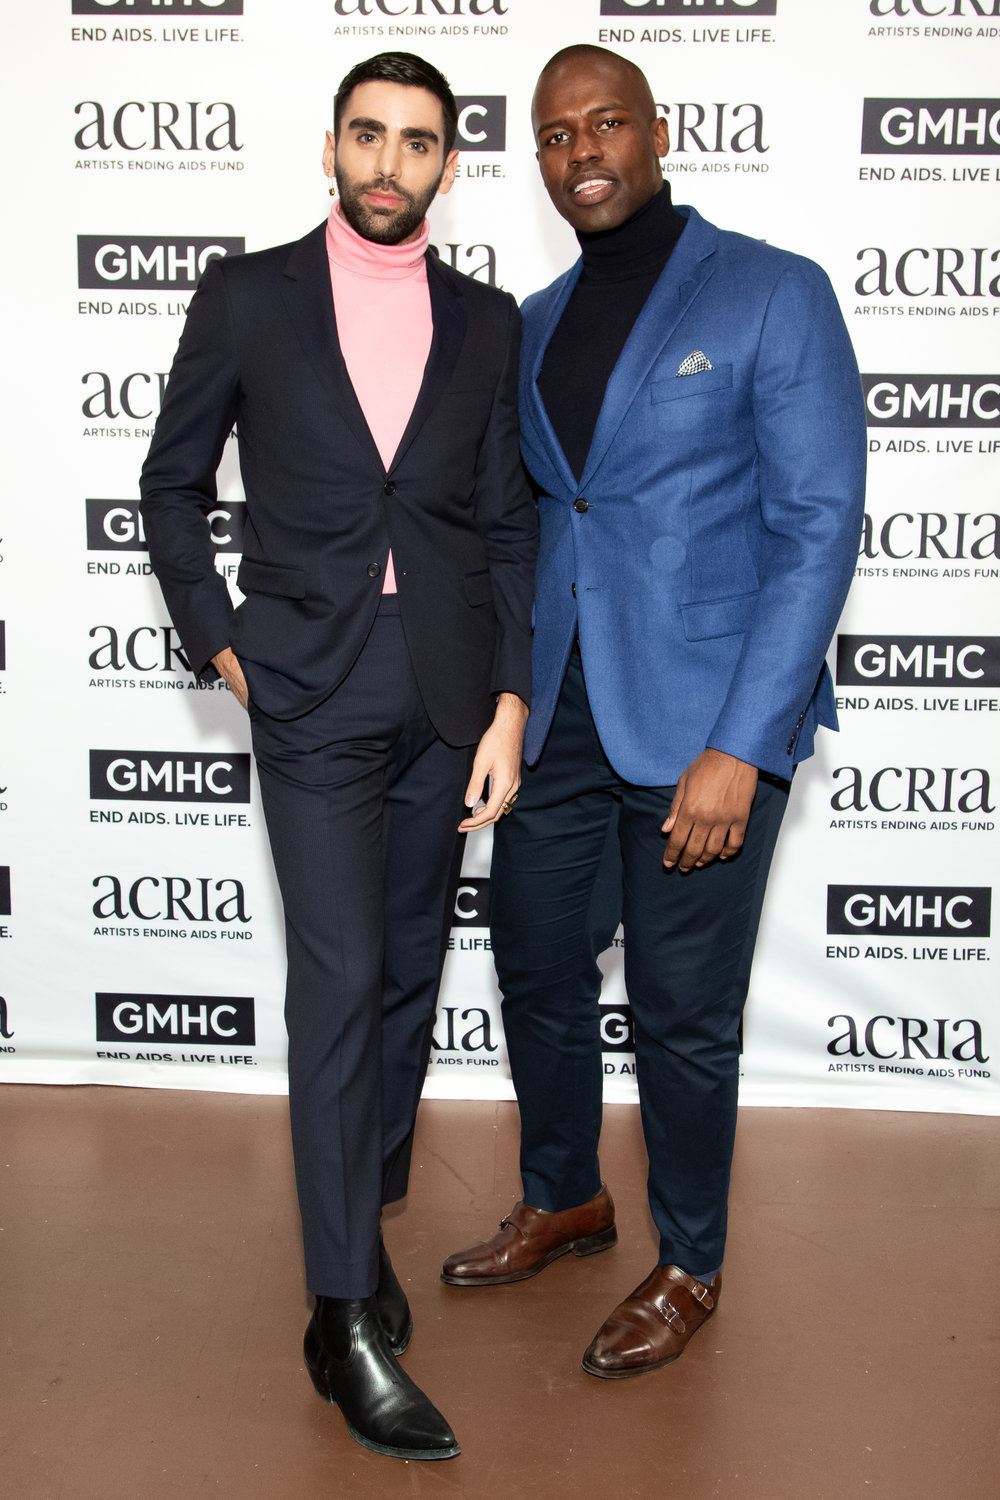 Phillip Picardi & Dr. Darien Sutton, Photo Courtesy of BFA Images